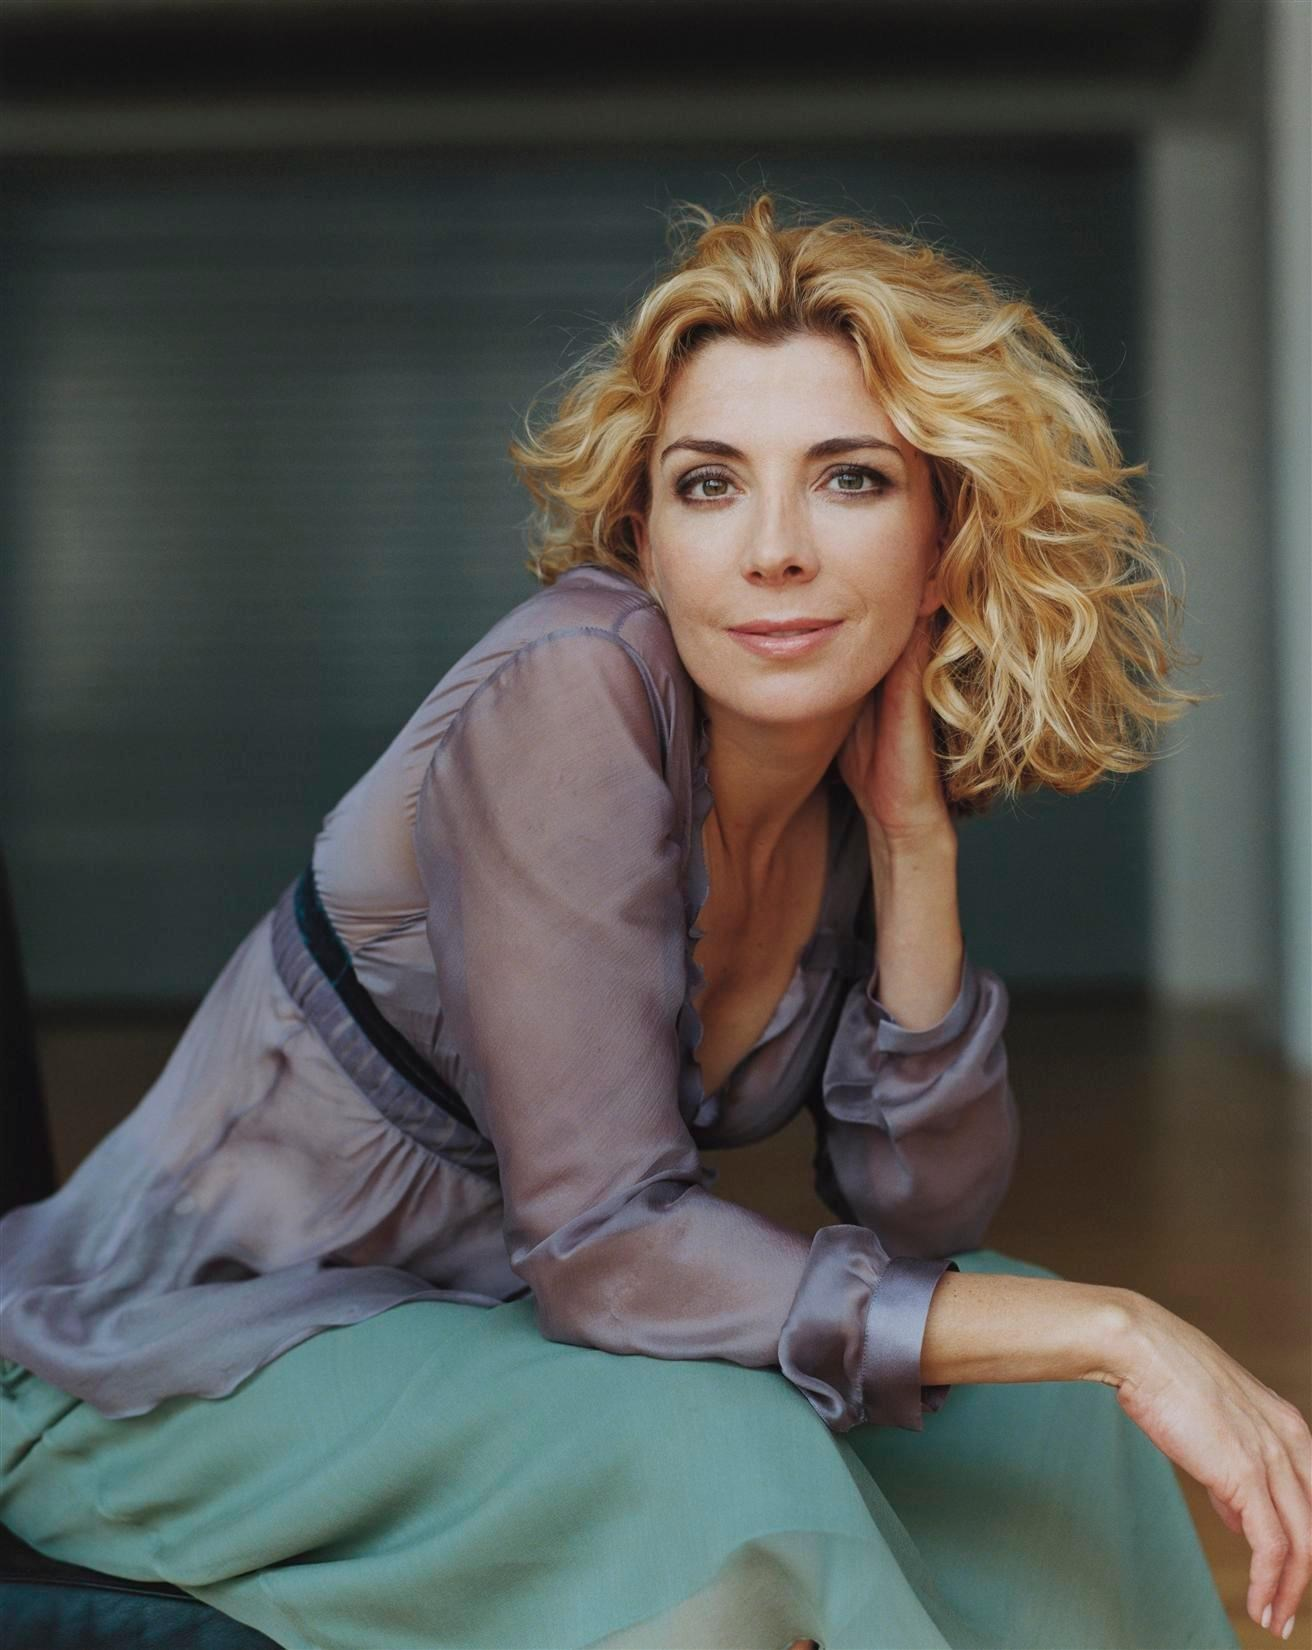 natasha richardson - photo #24